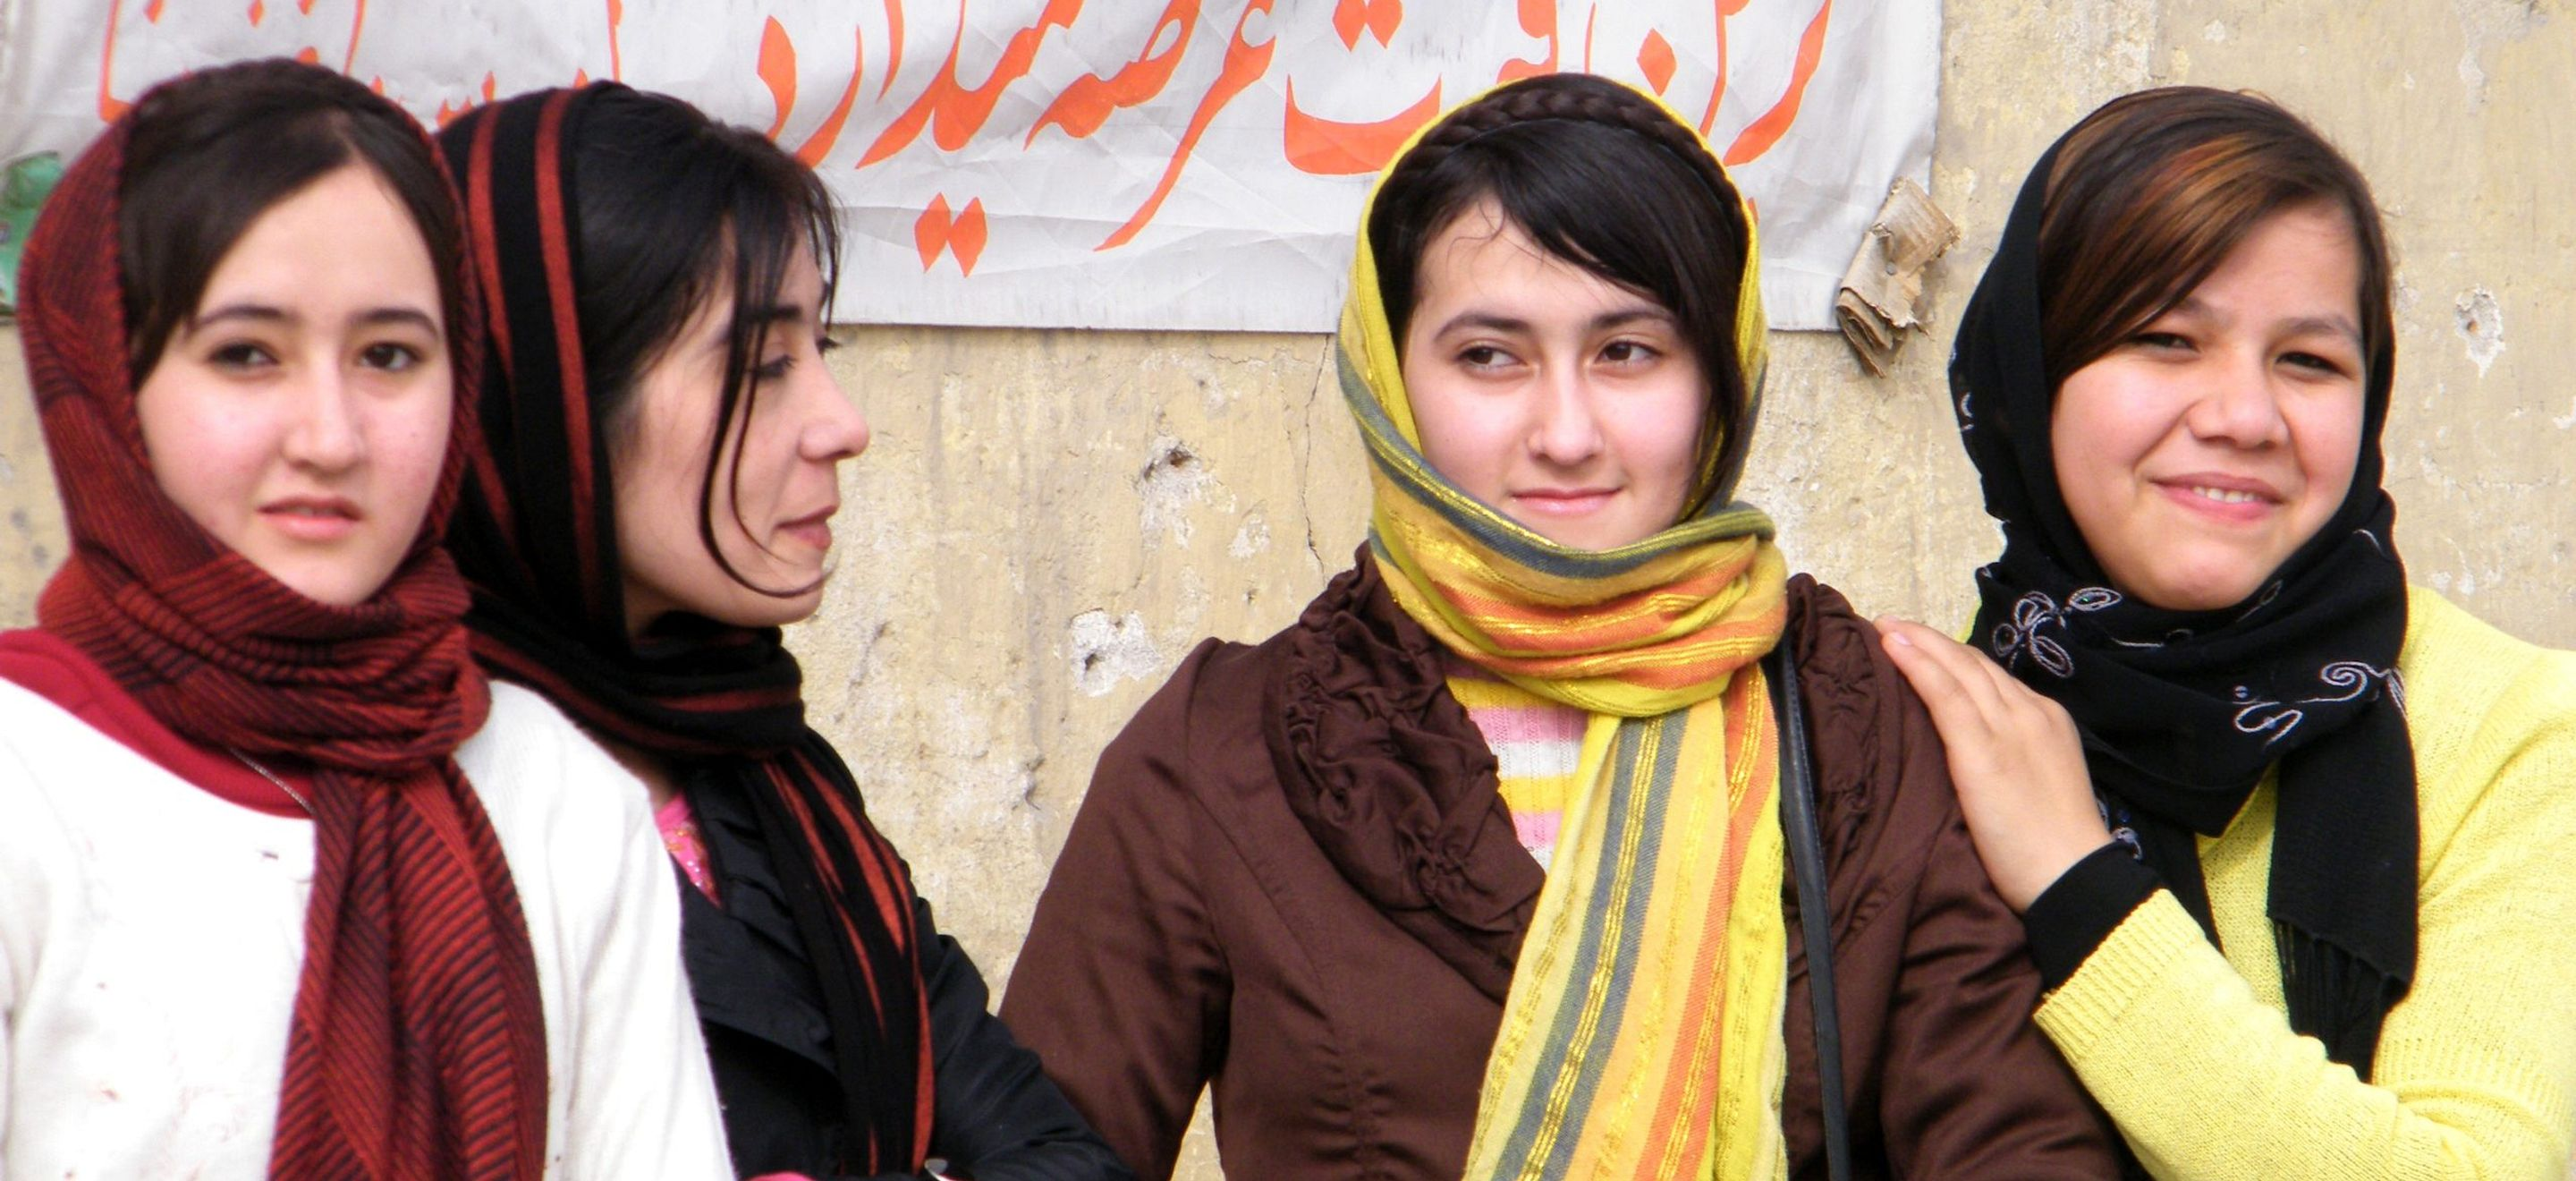 Four young Afghan women stand together linking arms and leaning on each other. Each women wears a striped headscarf.